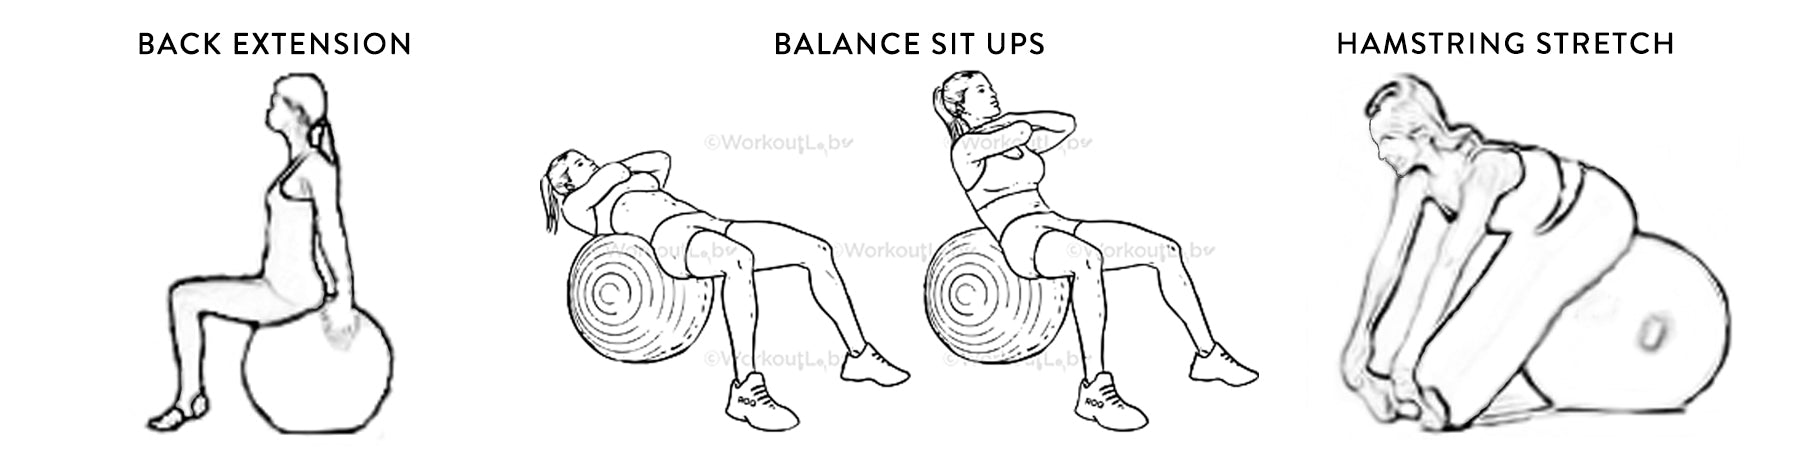 Stability ball exercises for equestrian fitness stability ball exercises for horse rider fitness balance ball exercises for equestrian fitness balance ball exercises for horse rider fitness back extension balanced sit ups balanced hamstring stretch workout labs